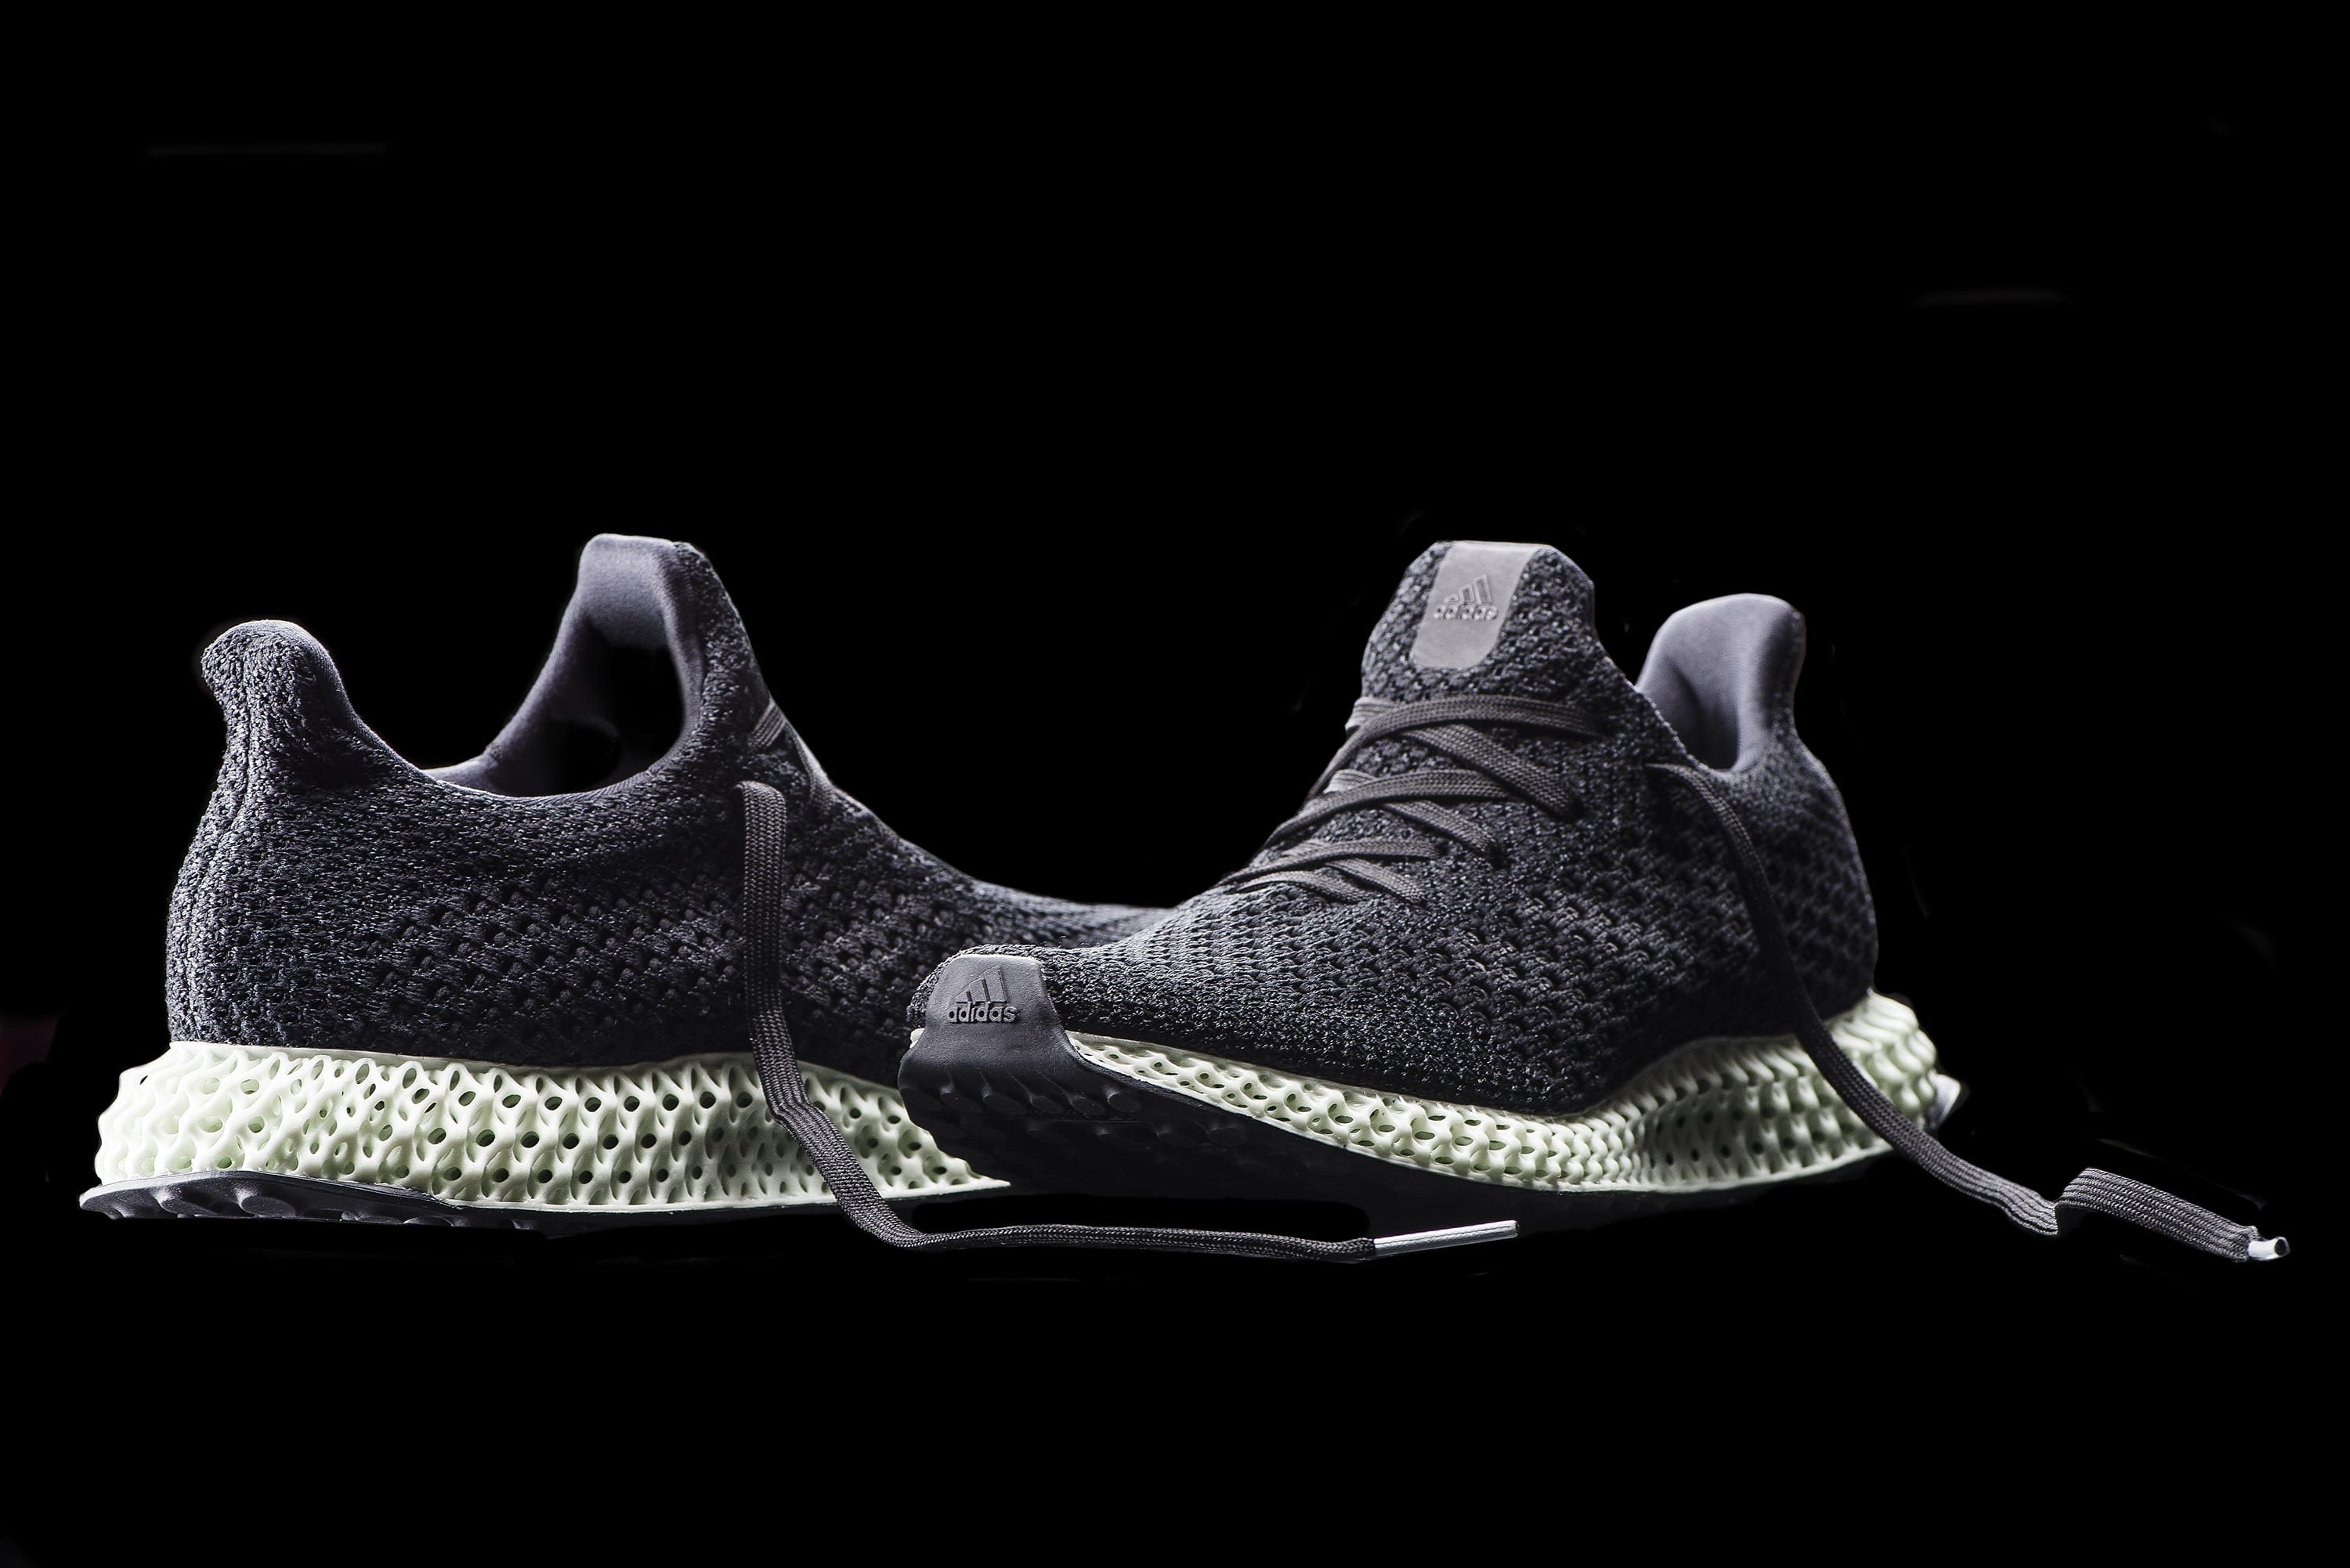 Mass 3D Printing Possibilities with Adidas's Futurecraft 4D